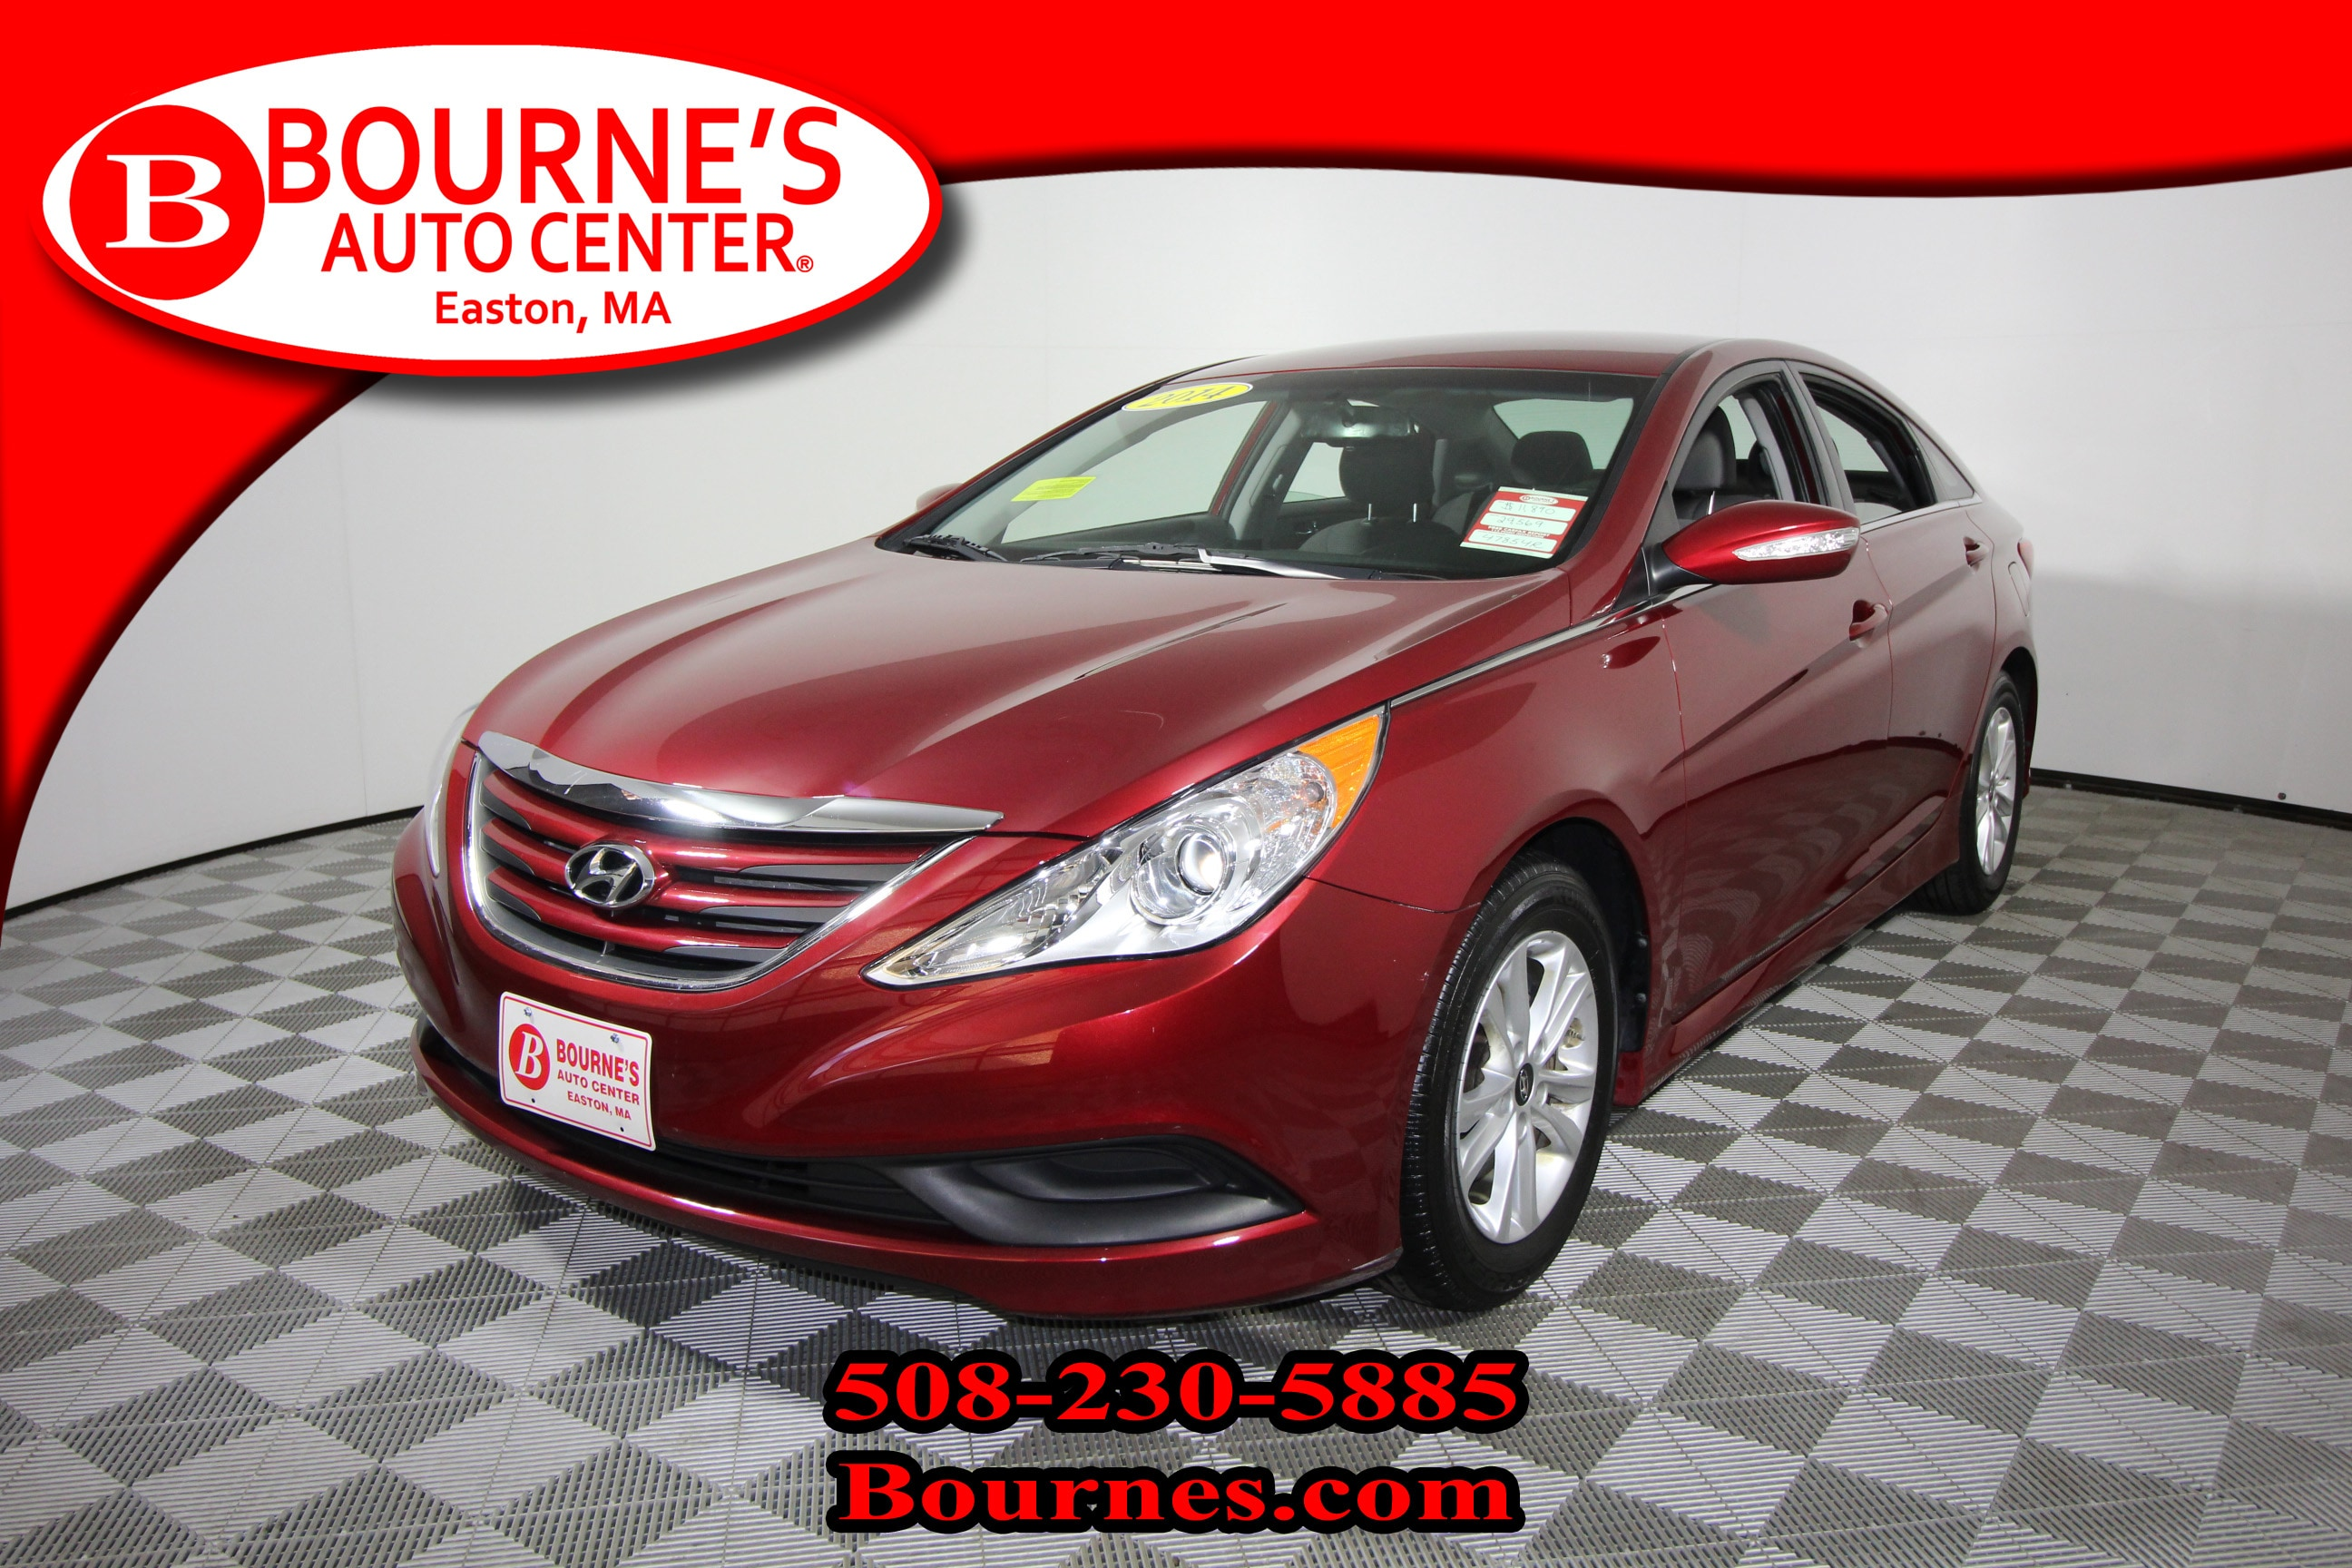 2014 Hyundai Sonata GLS w/ Heated Front Seats And Backup Camera. Sedan